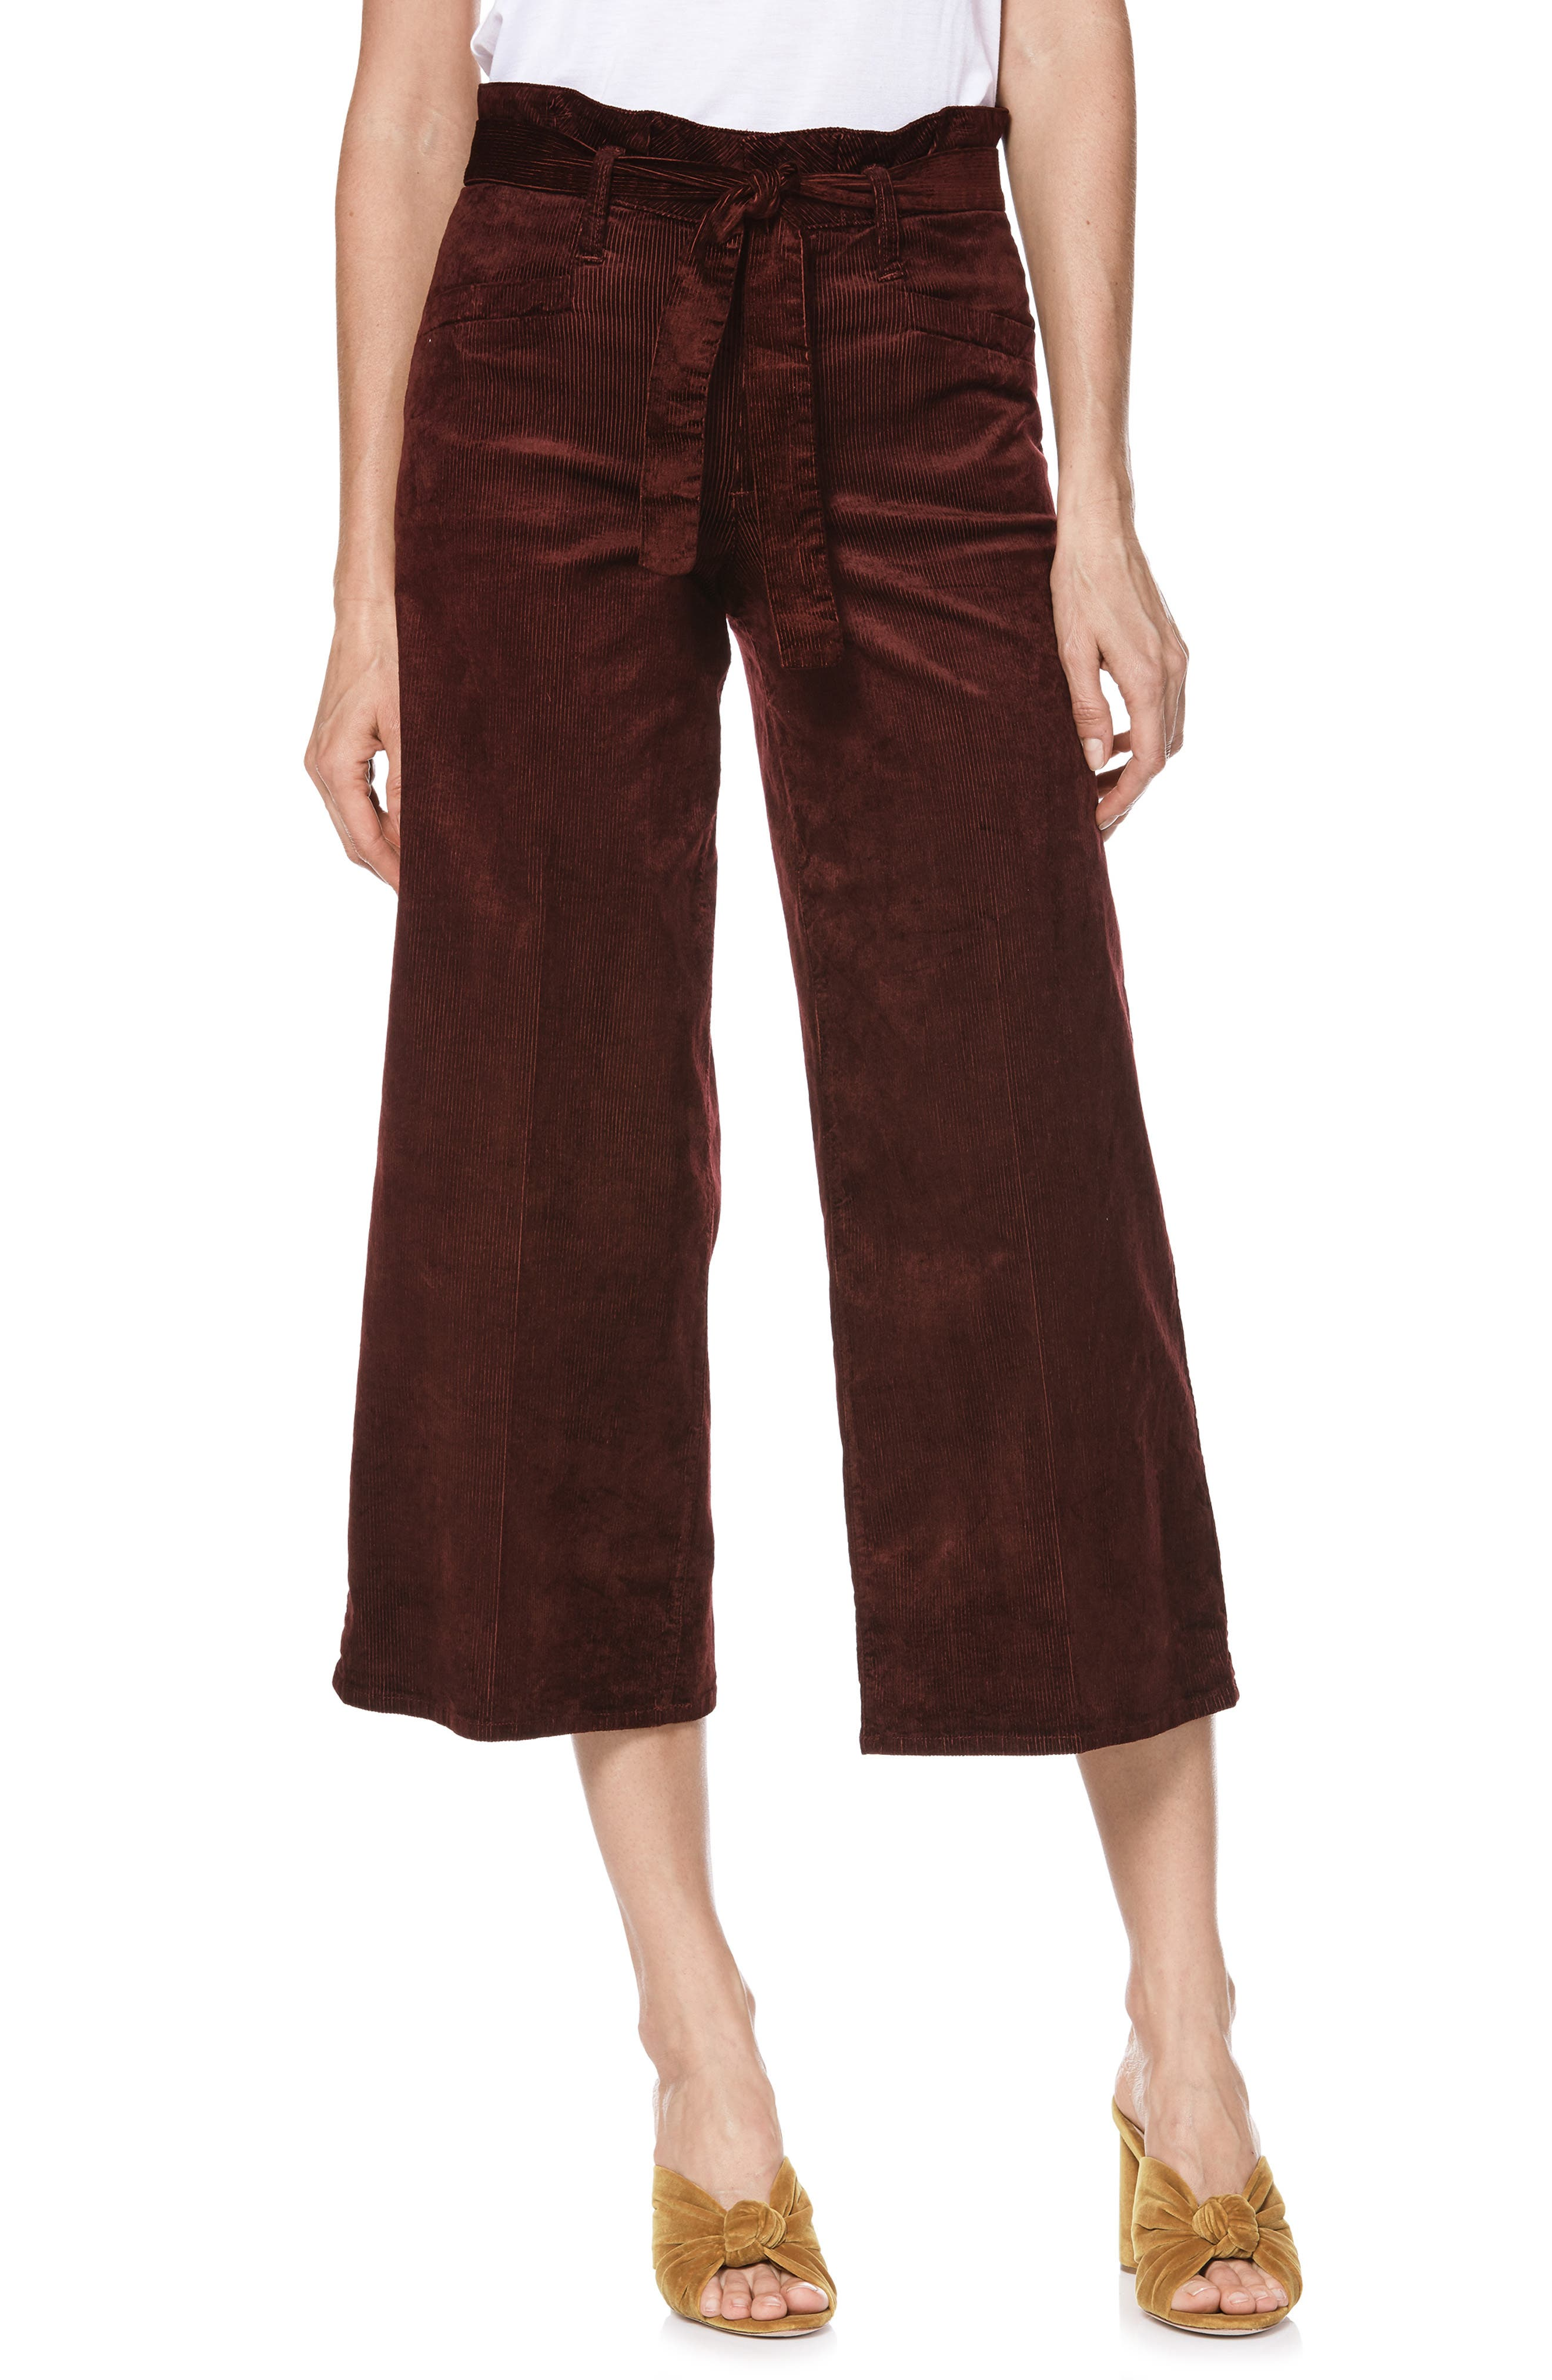 Sutton Paperbag Crop Wide Leg Corduroy Pants,                             Main thumbnail 1, color,                             DARK CURRANT